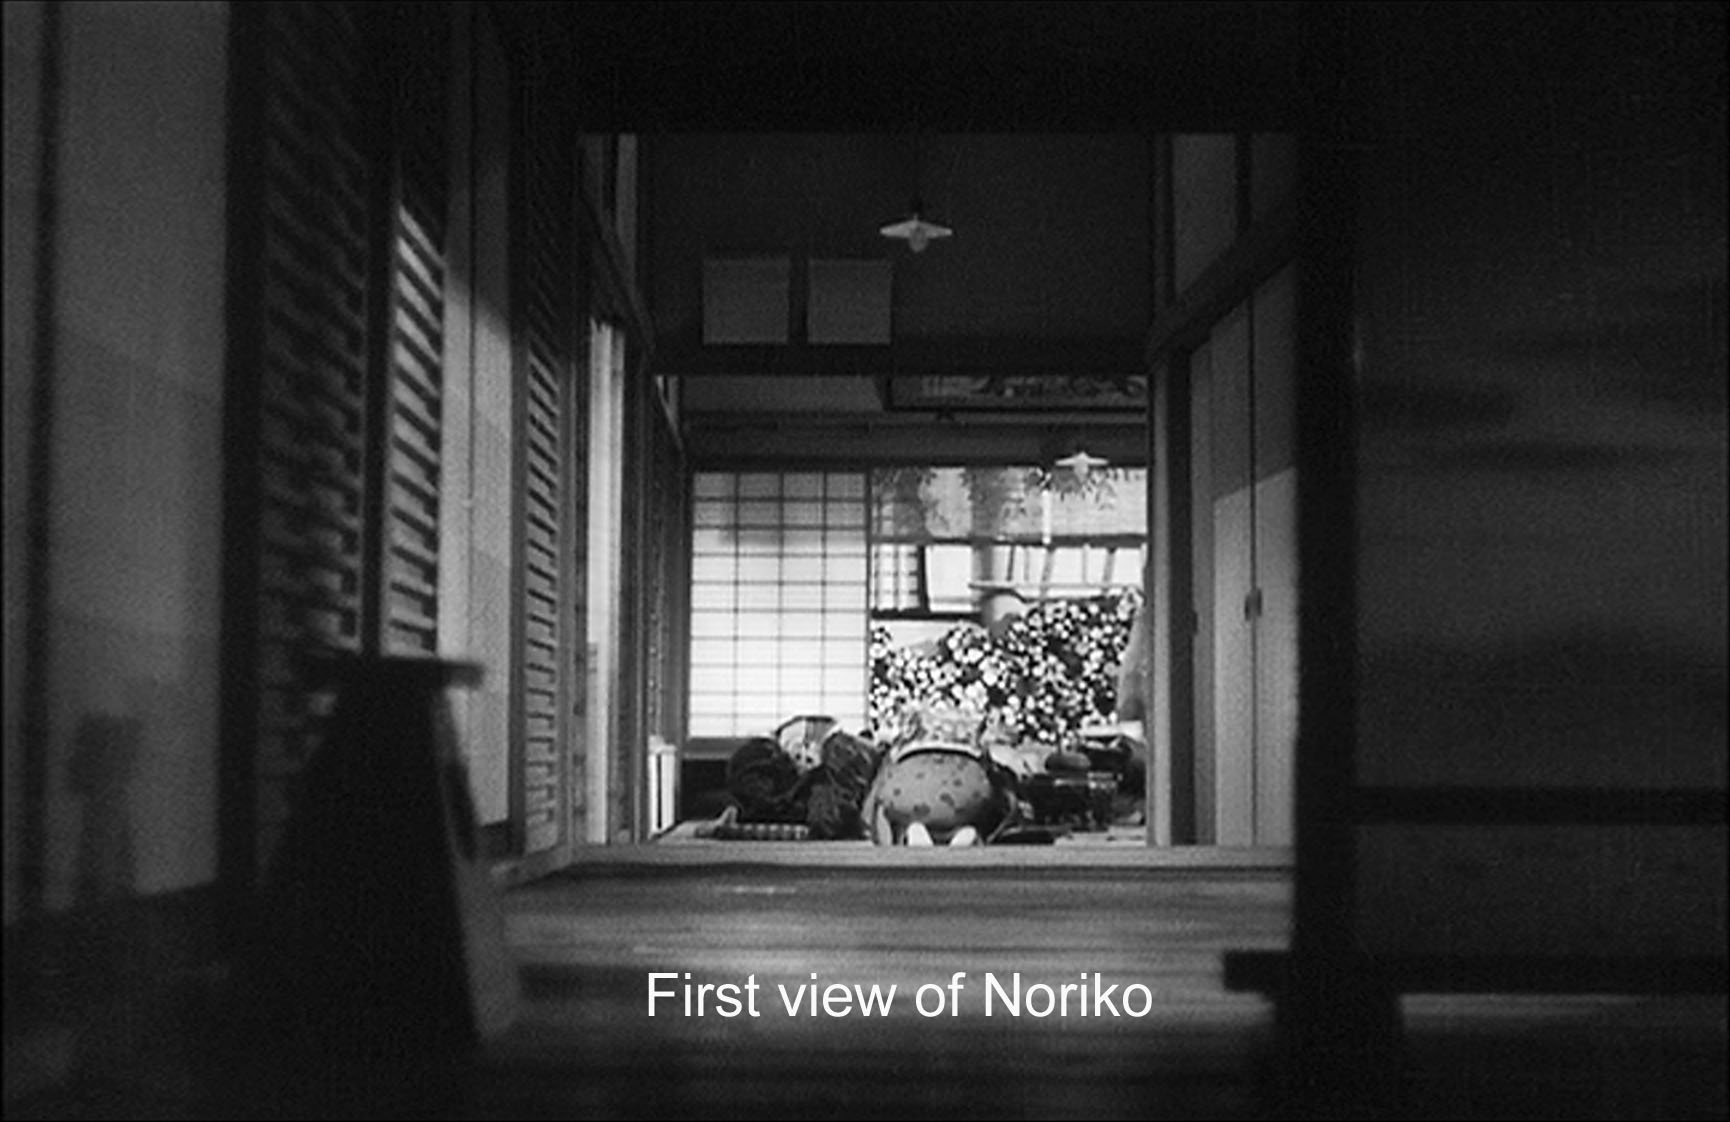 First view of Noriko